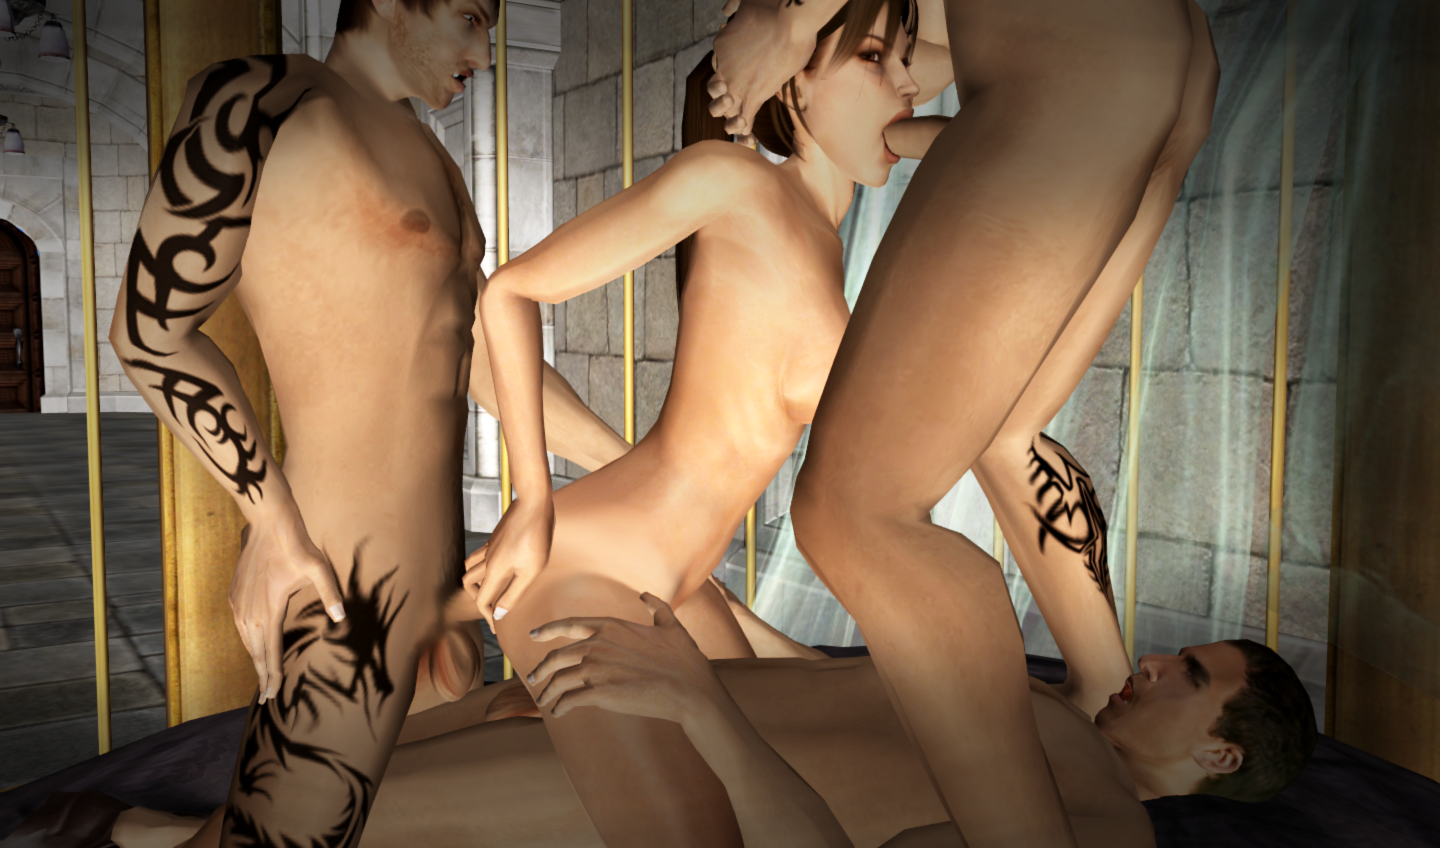 Cheat code tomb raider porno nude pics